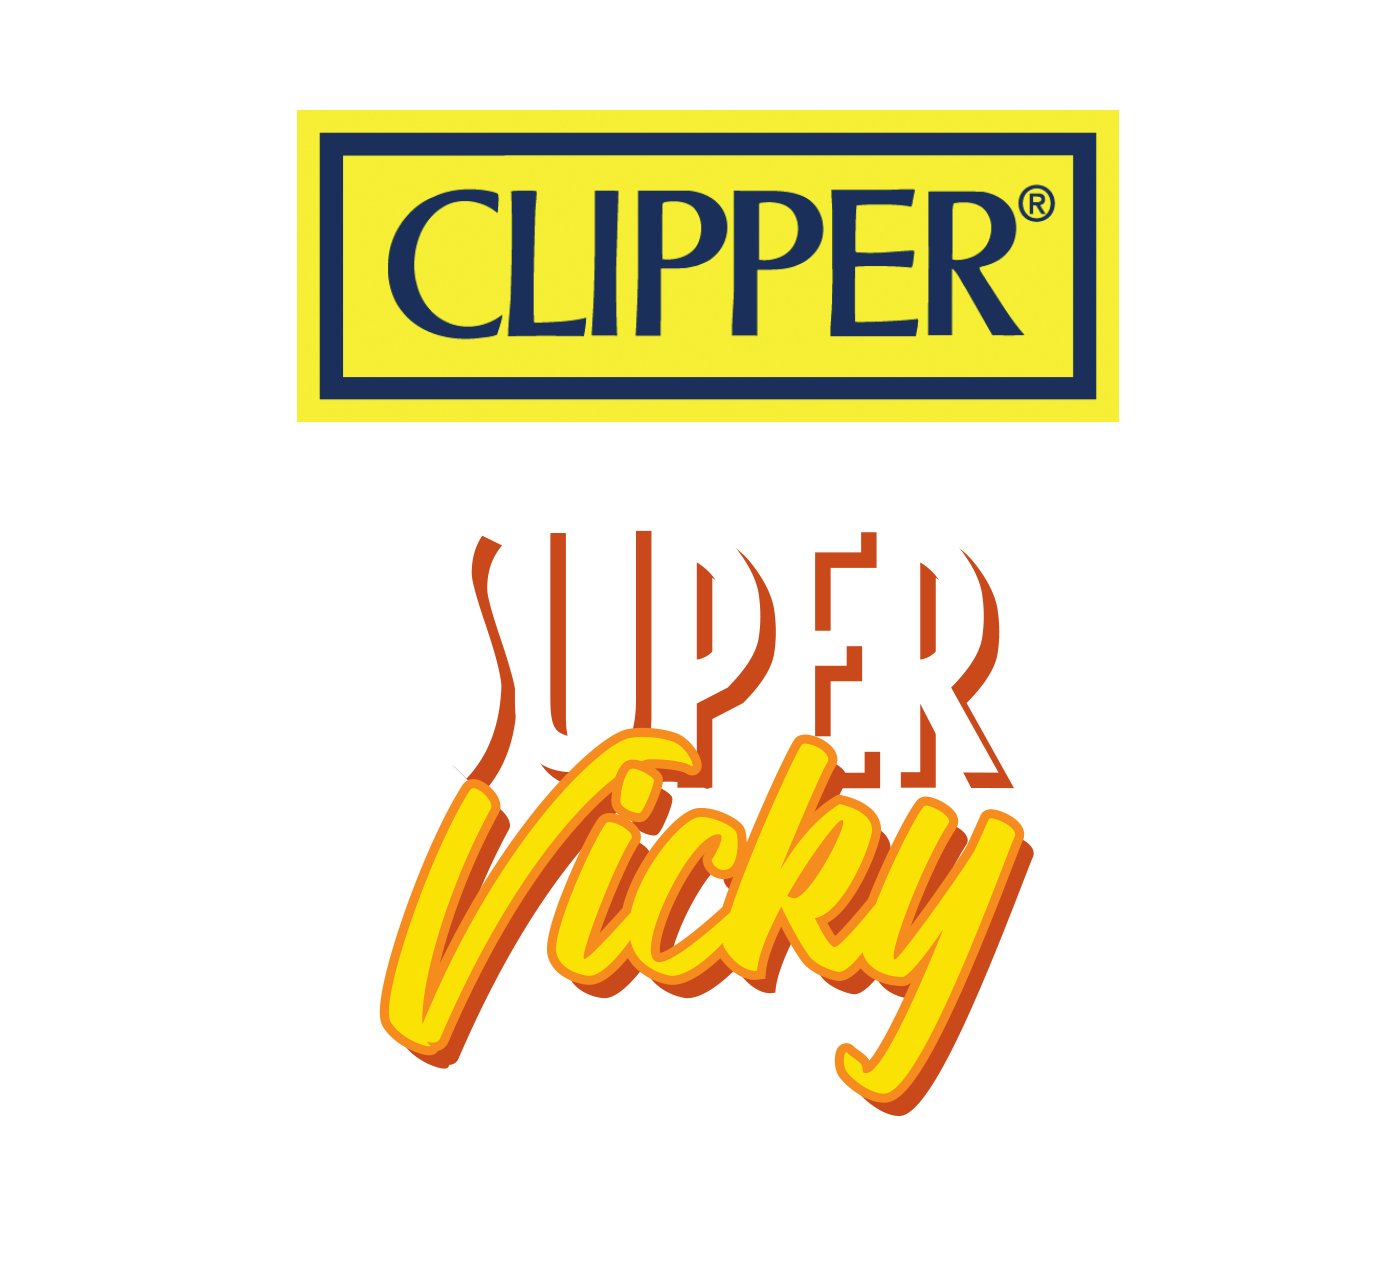 Logotipo Super Vicky para Clipper